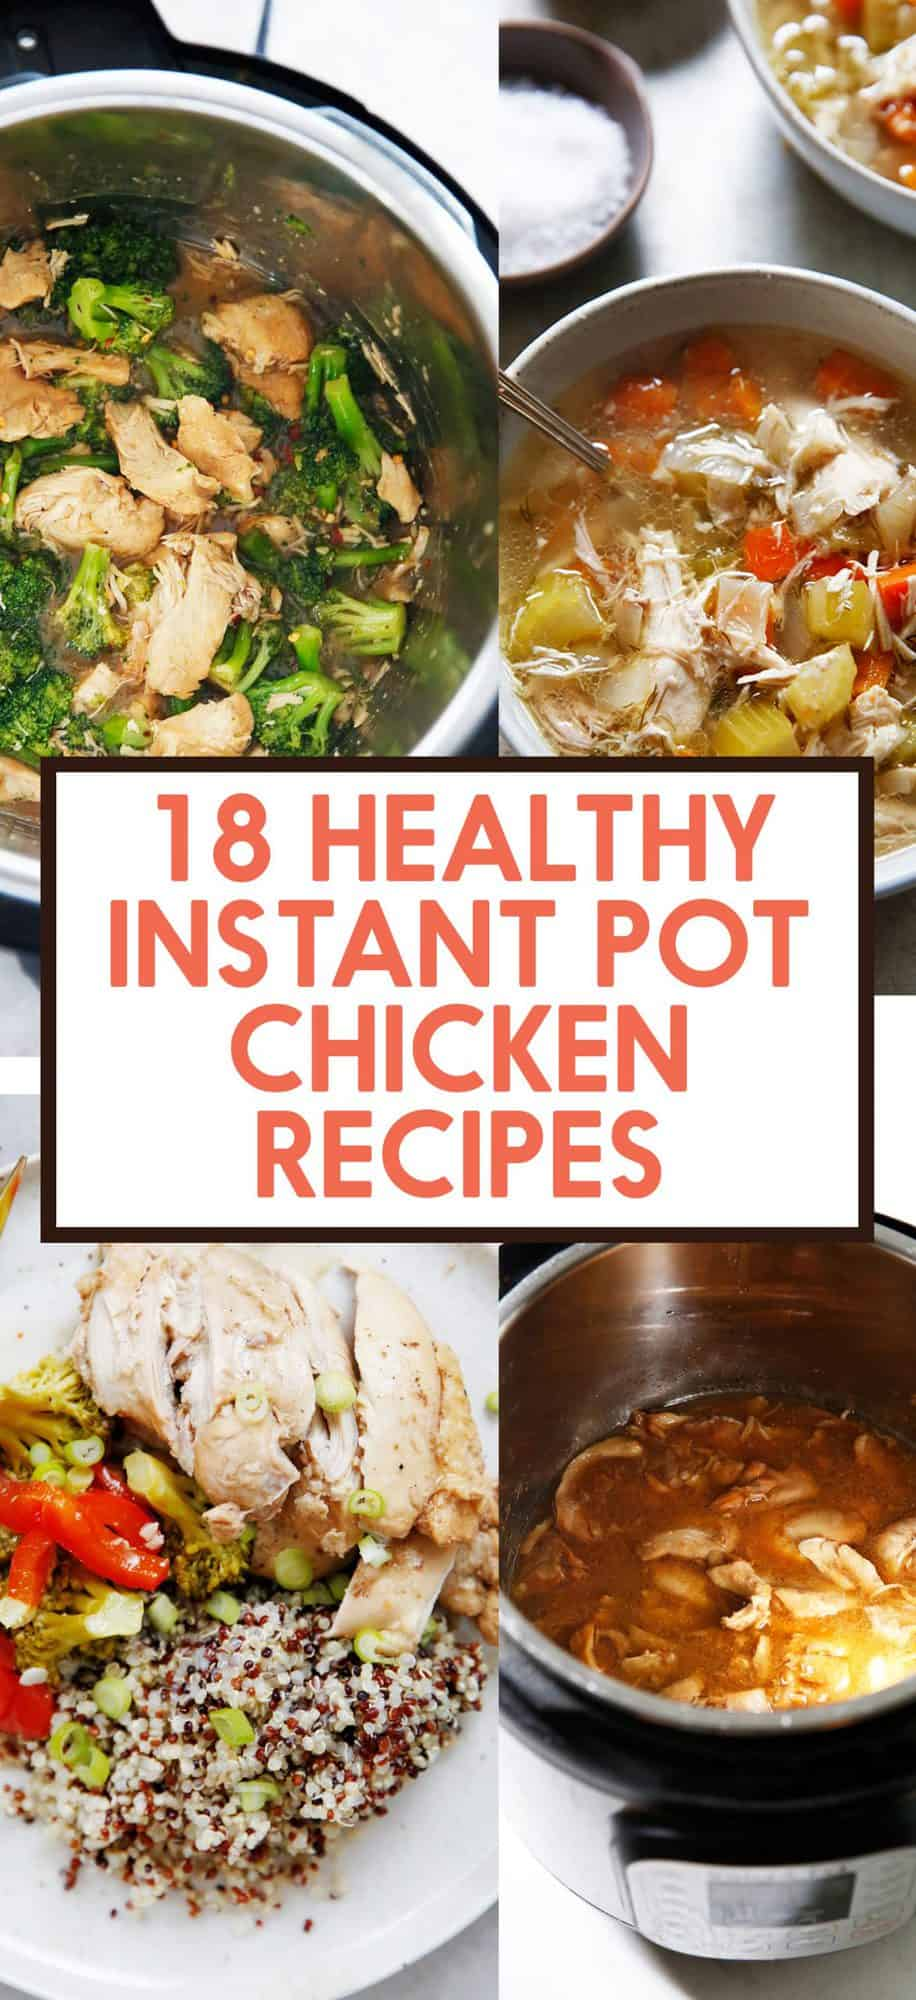 18 Healthy Instant Pot Chicken Recipes